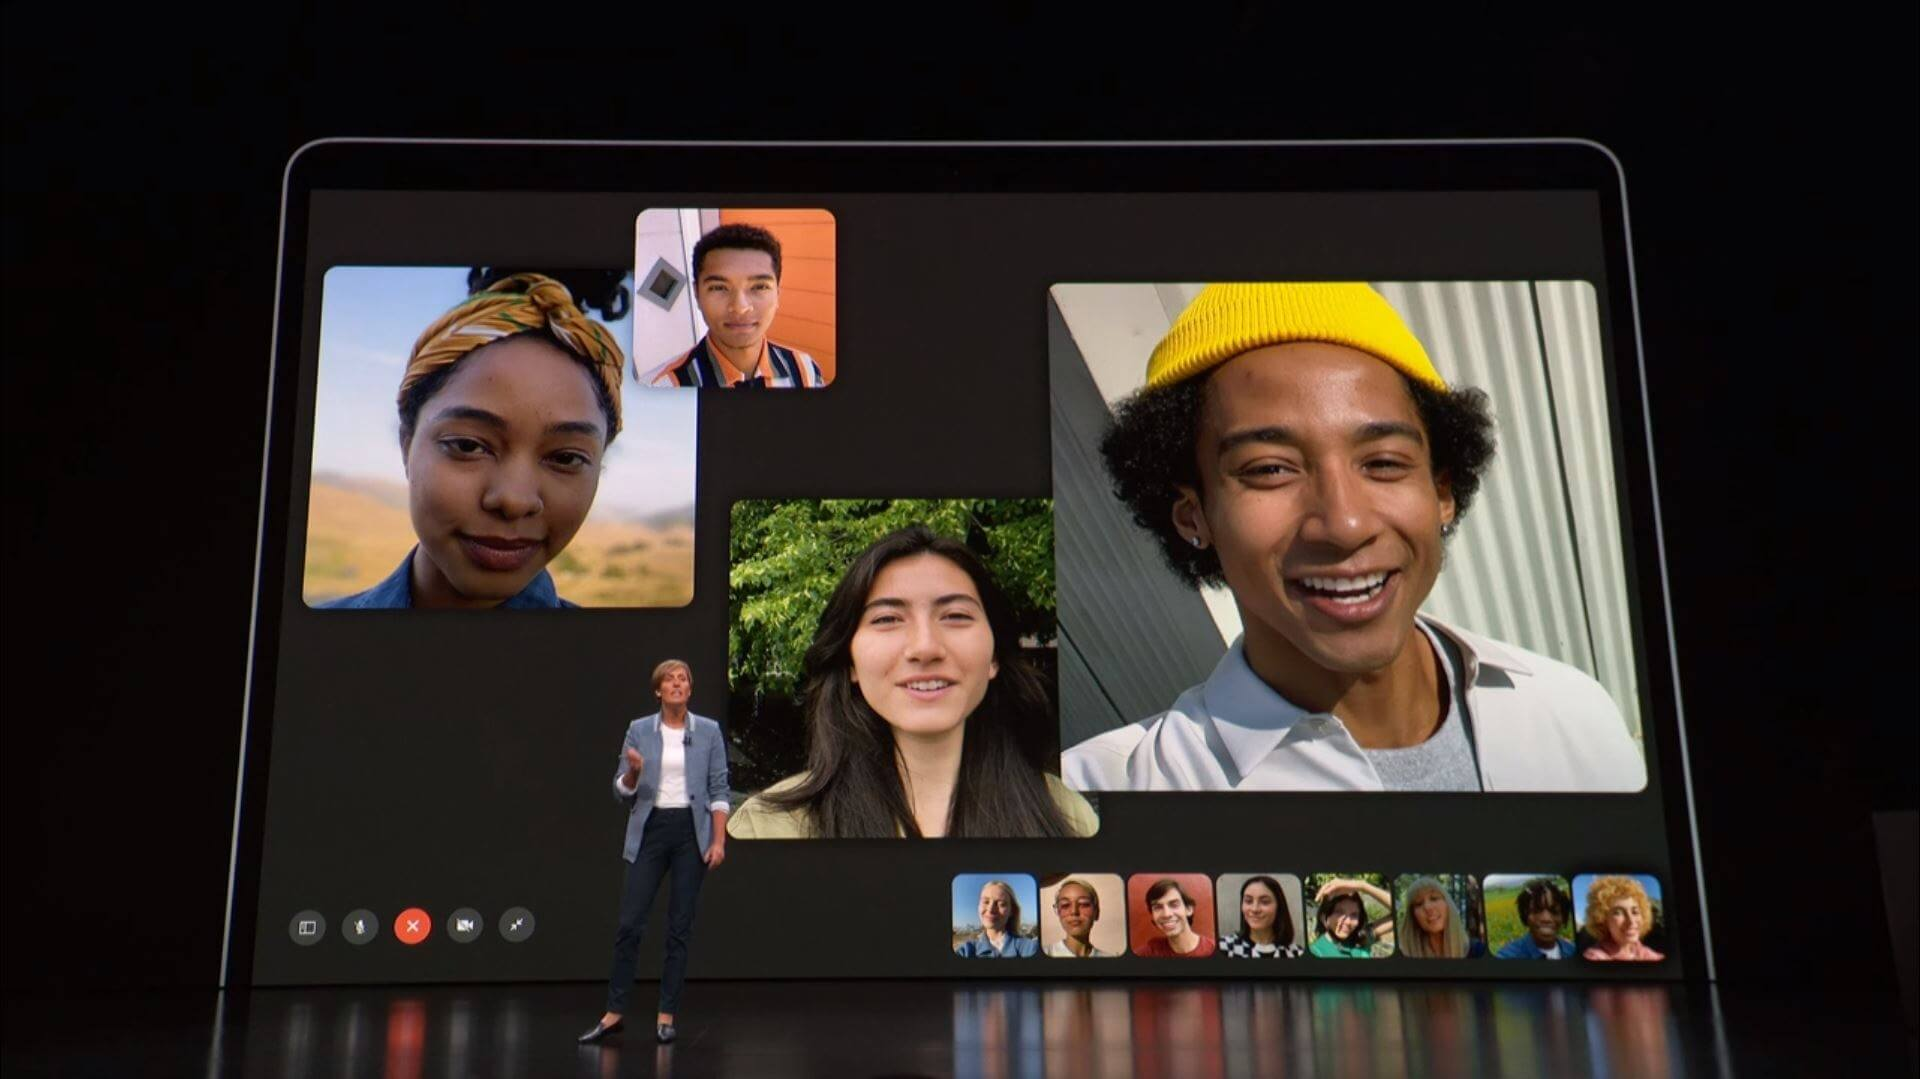 Apple releases bug fix for embarrassing security flaw that allowed FaceTime eavesdropping